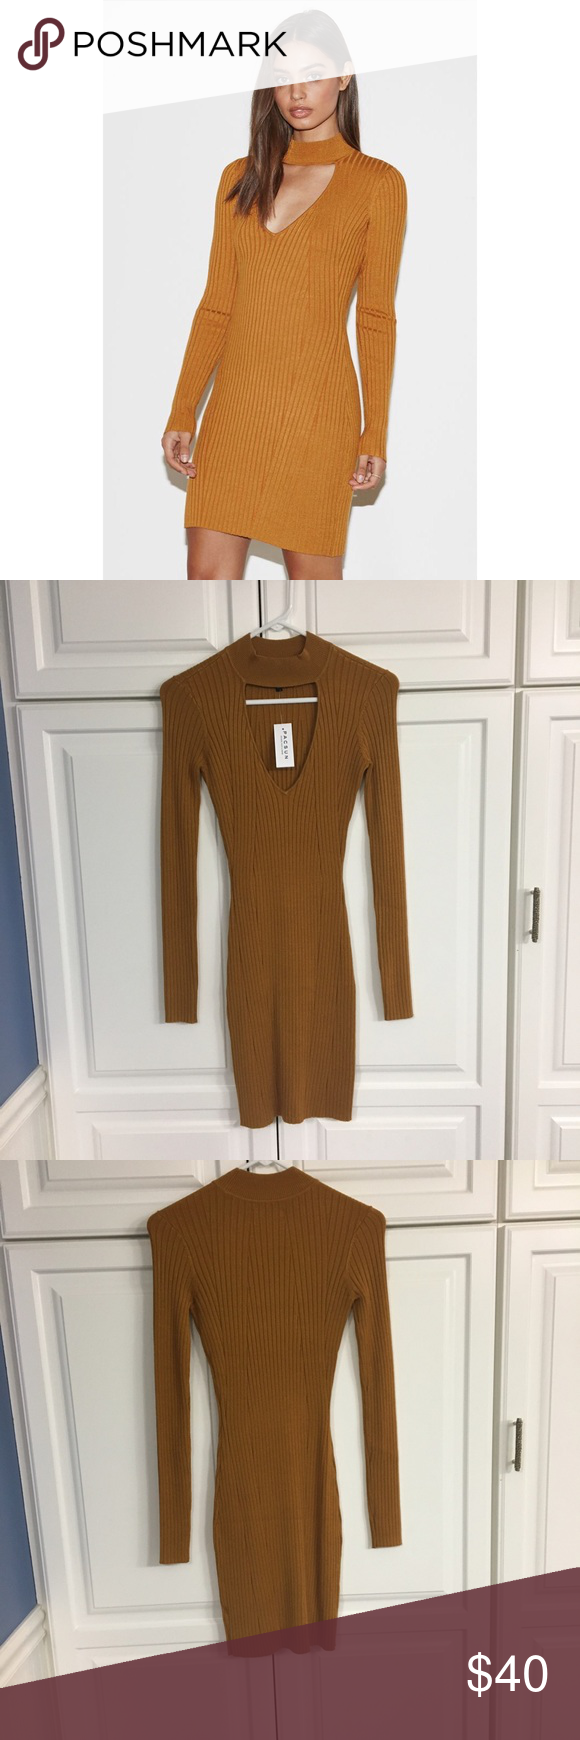 2ce249052d9 NWT Kendall   Kylie Ribbed Mock Neck Sweater Dress Soft and stretchy  material